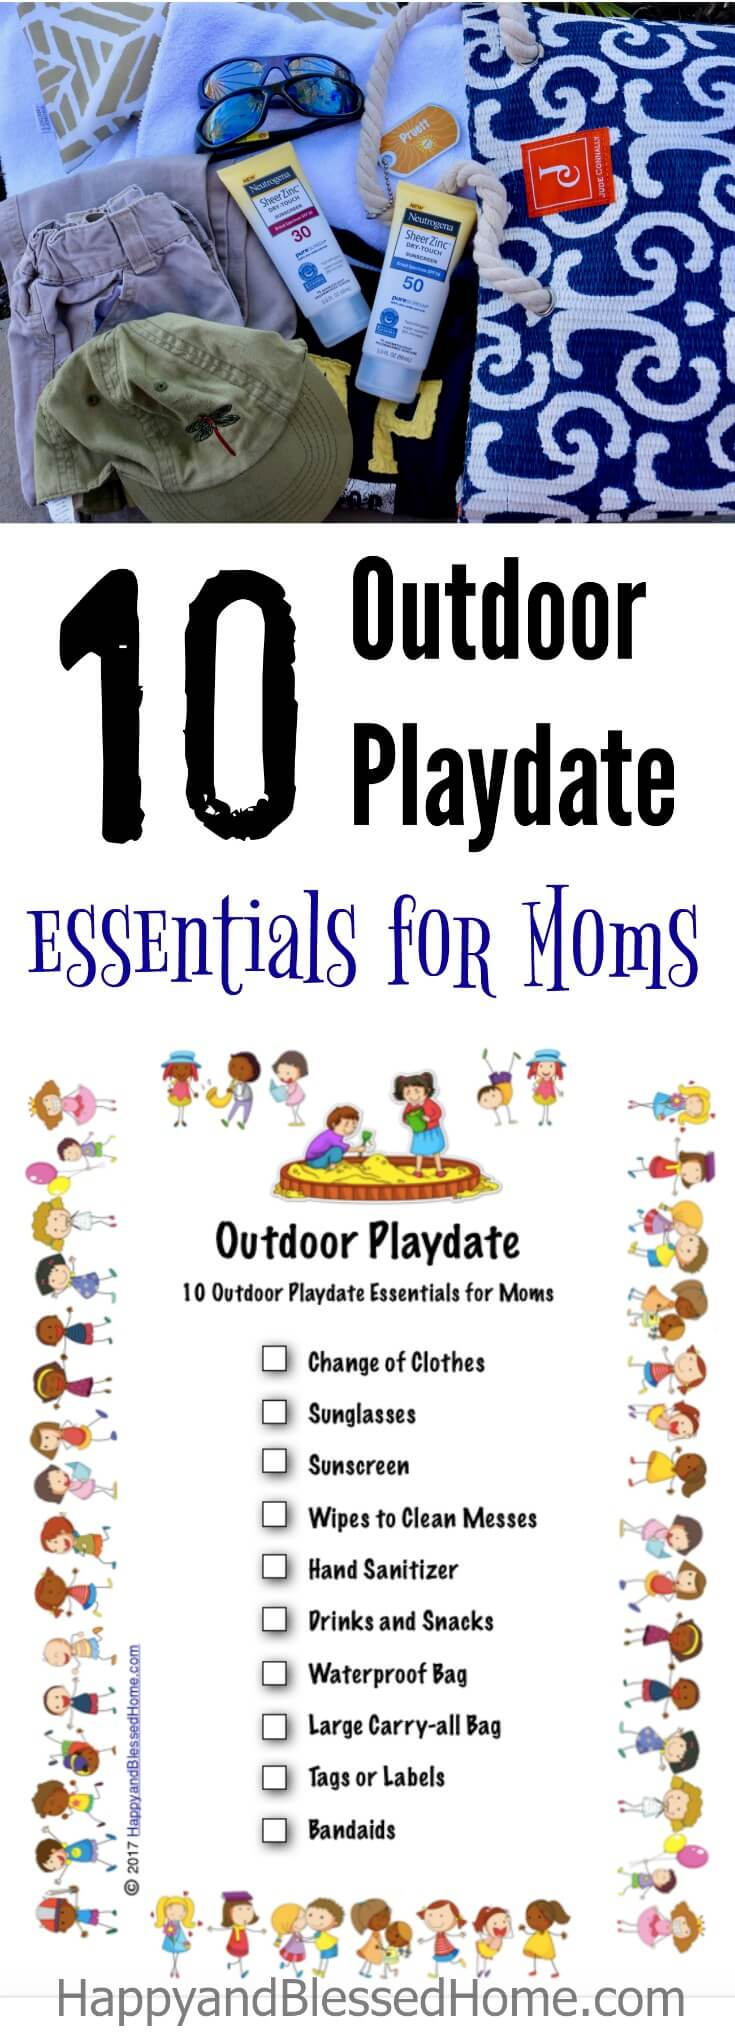 10 Outdoor Playdate Essentials for Moms with FREE printable checklist